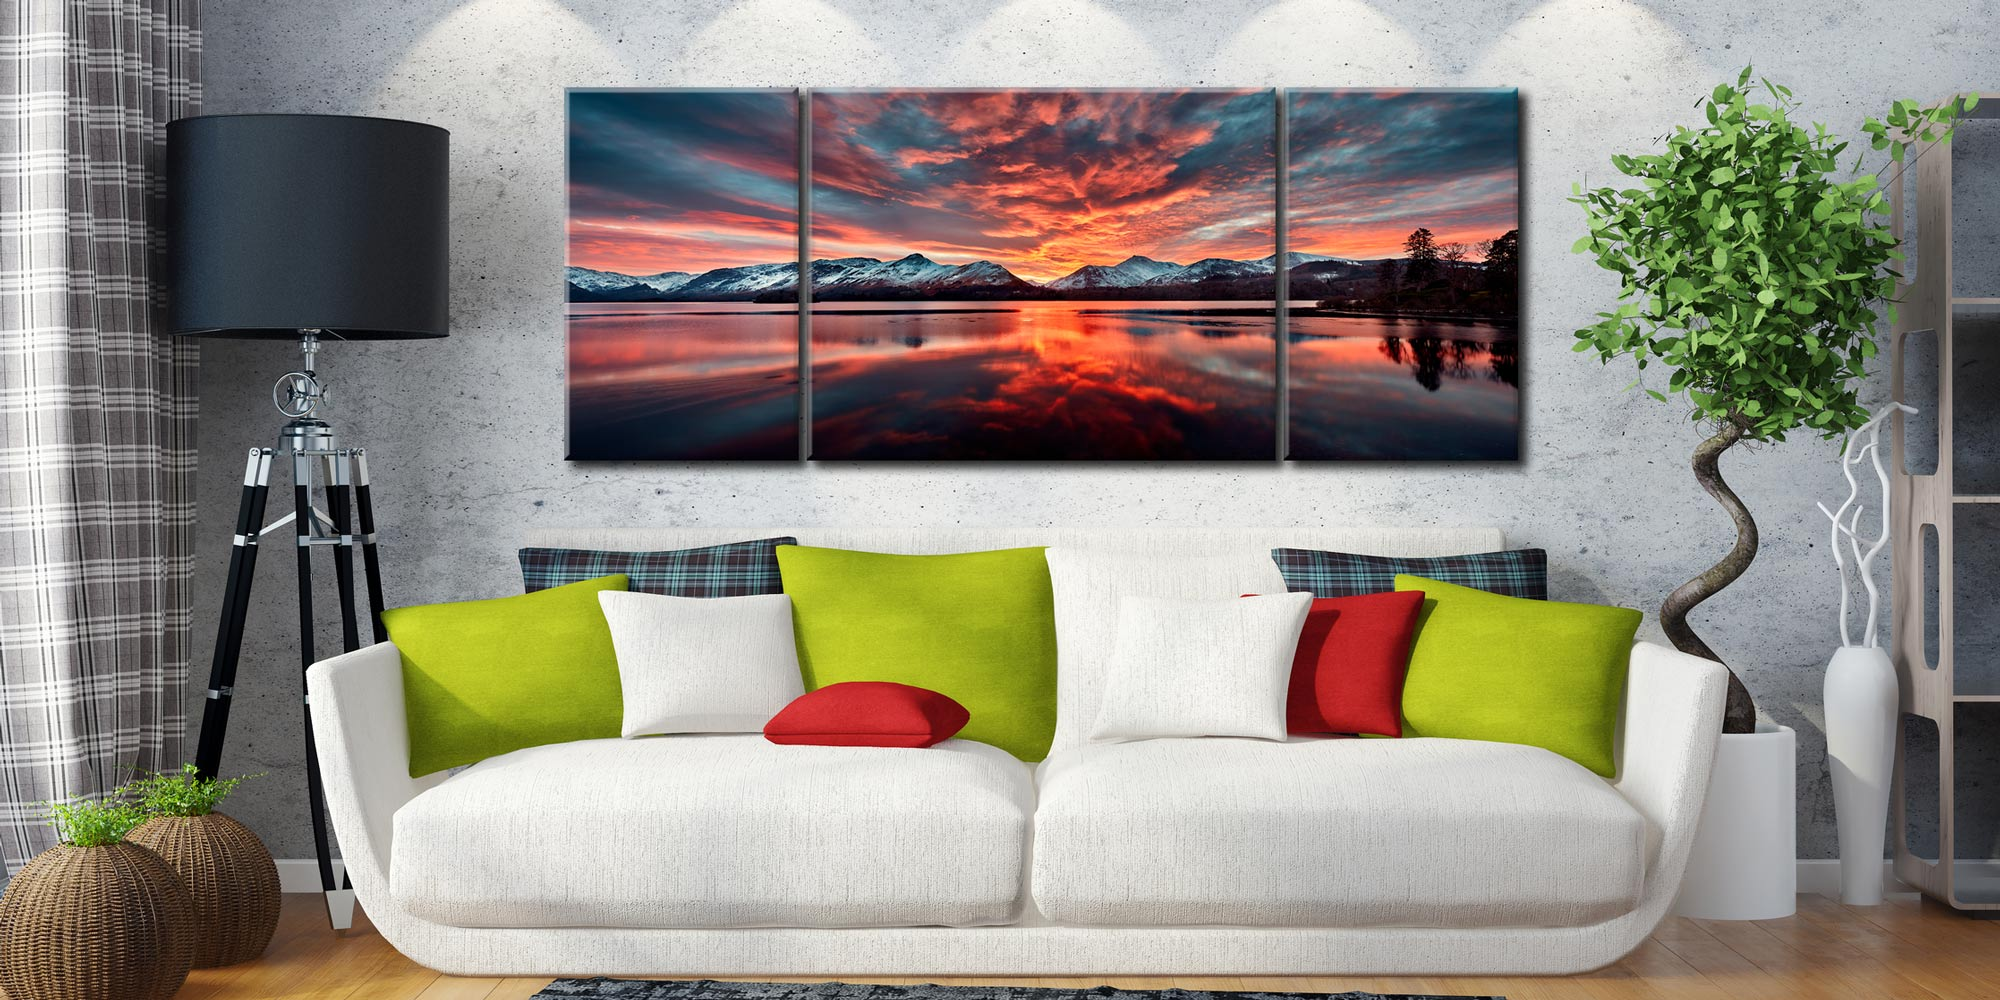 Red Skies Over Derwent Water  - 3 Panel Wide Mid Canvas on Wall